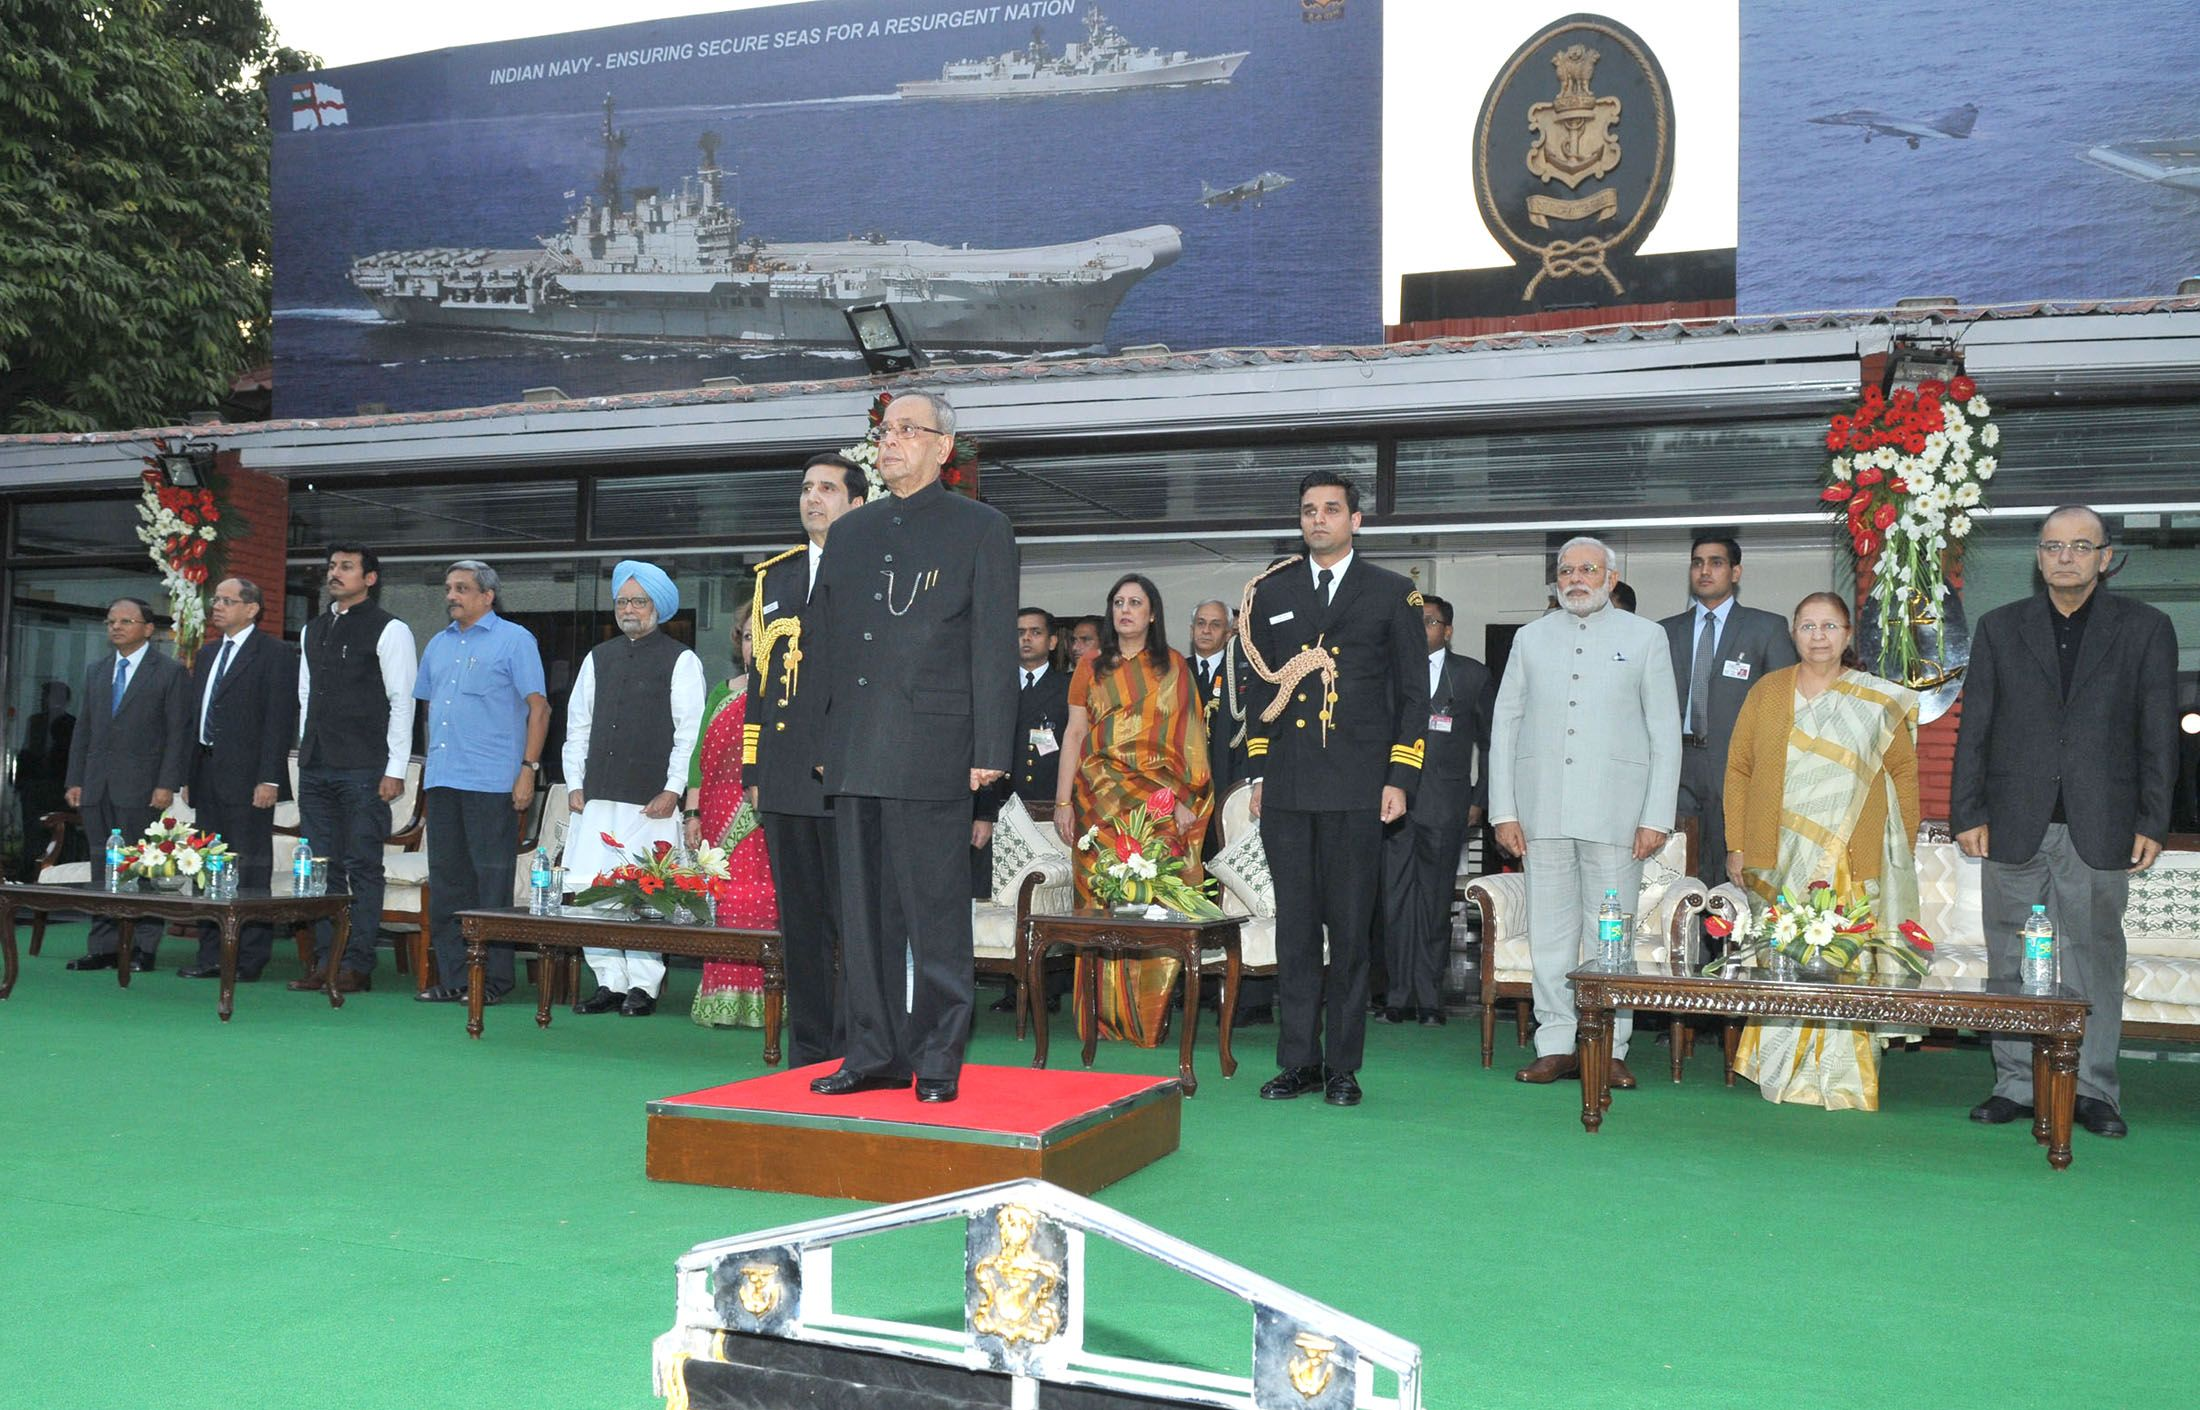 The occasion of Navy Day